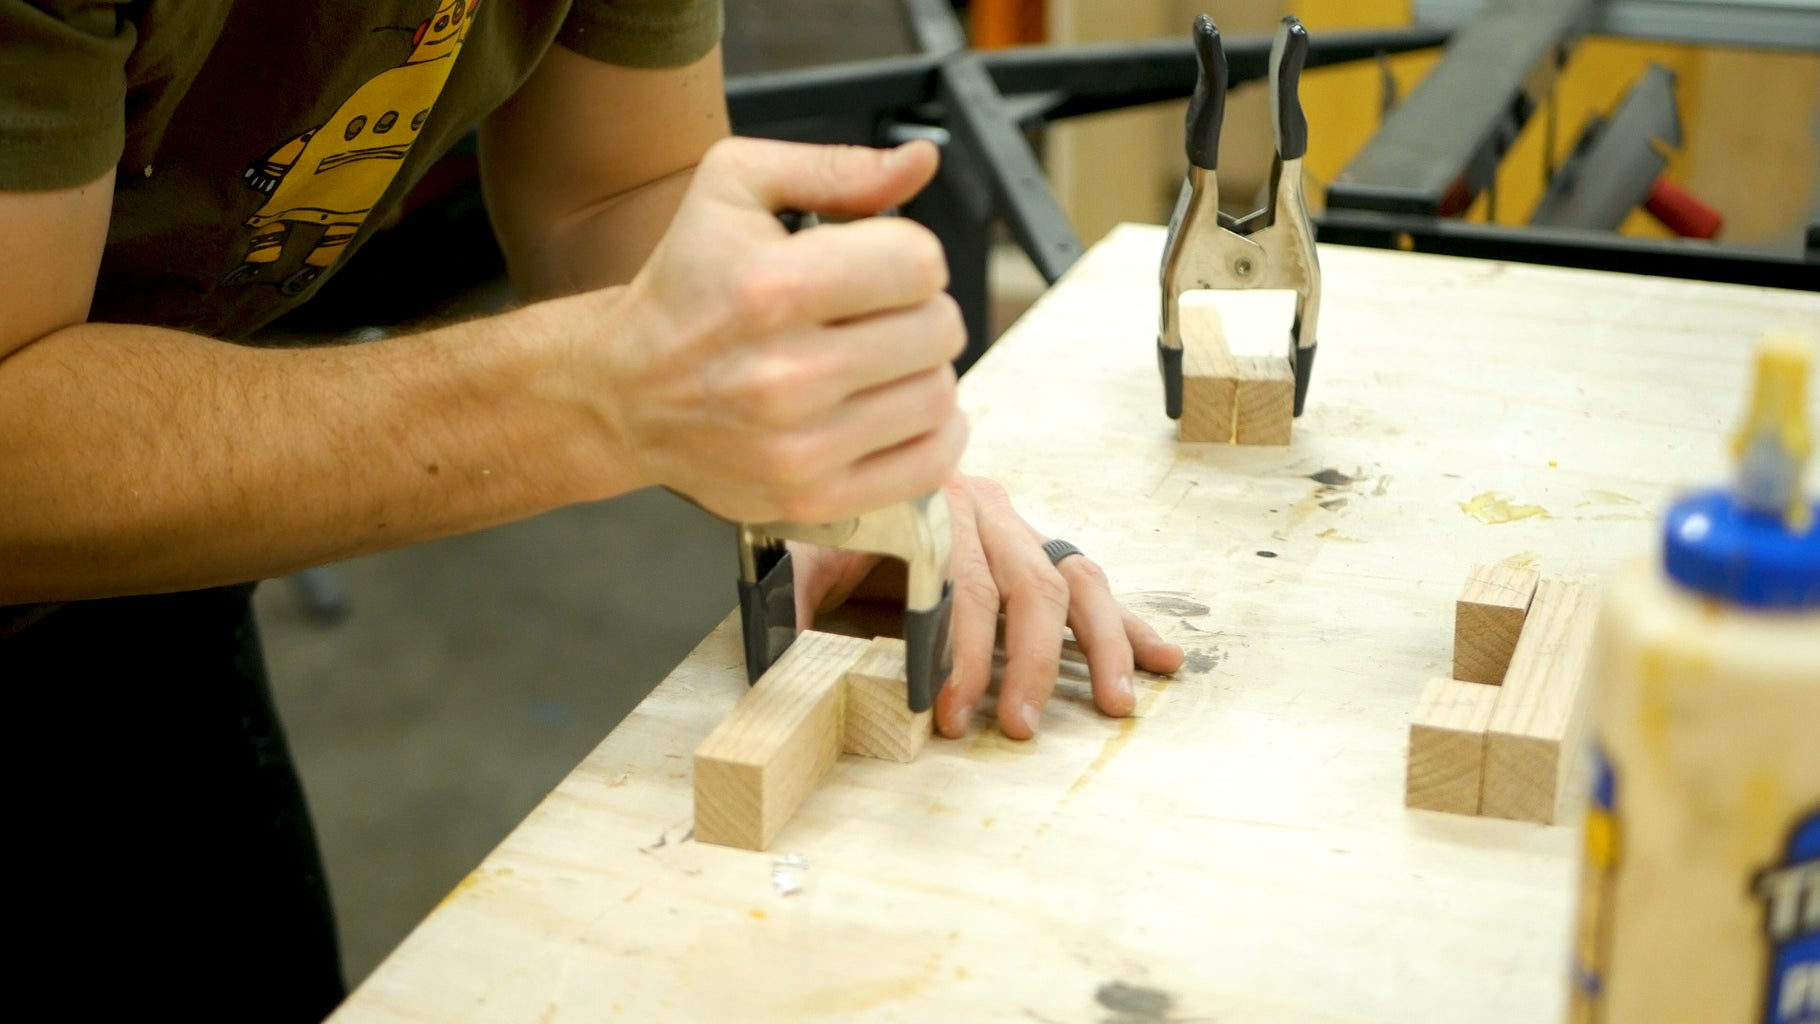 Stirrup Assembly and Power Carving - Round 3